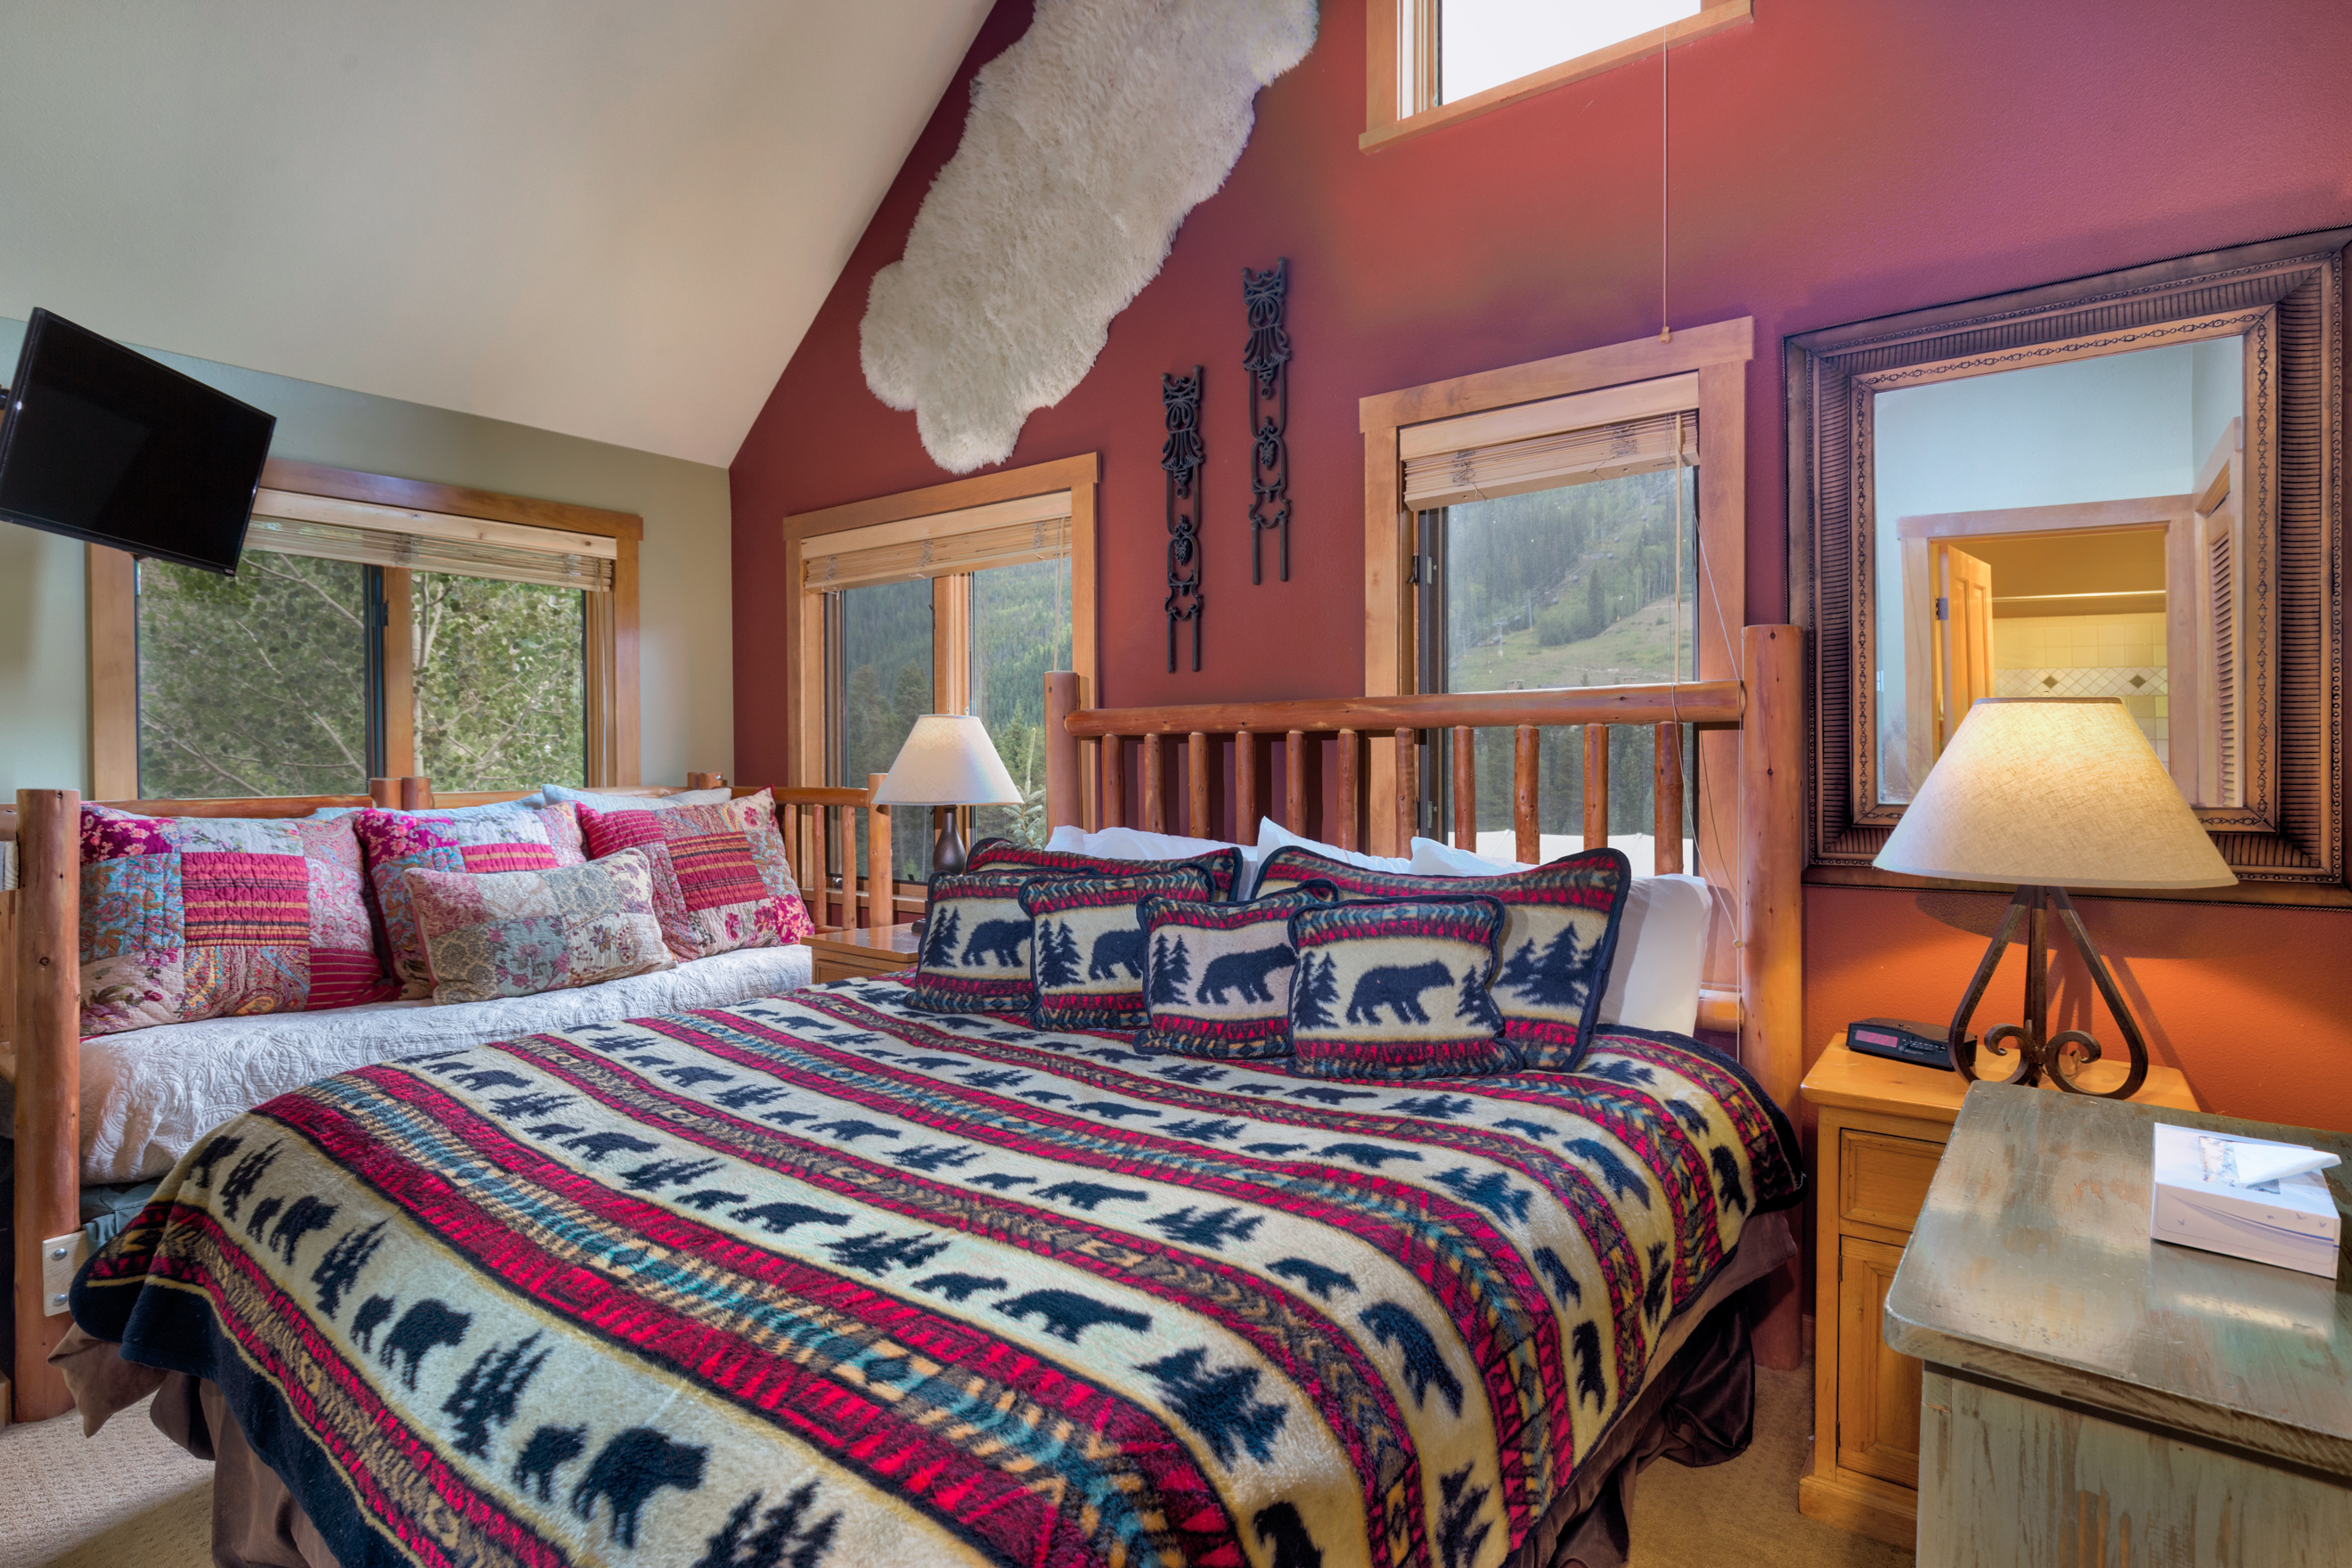 The second master bedroom features a king-sized bed, a twin-sized bed, a flat screen TV and slope views.